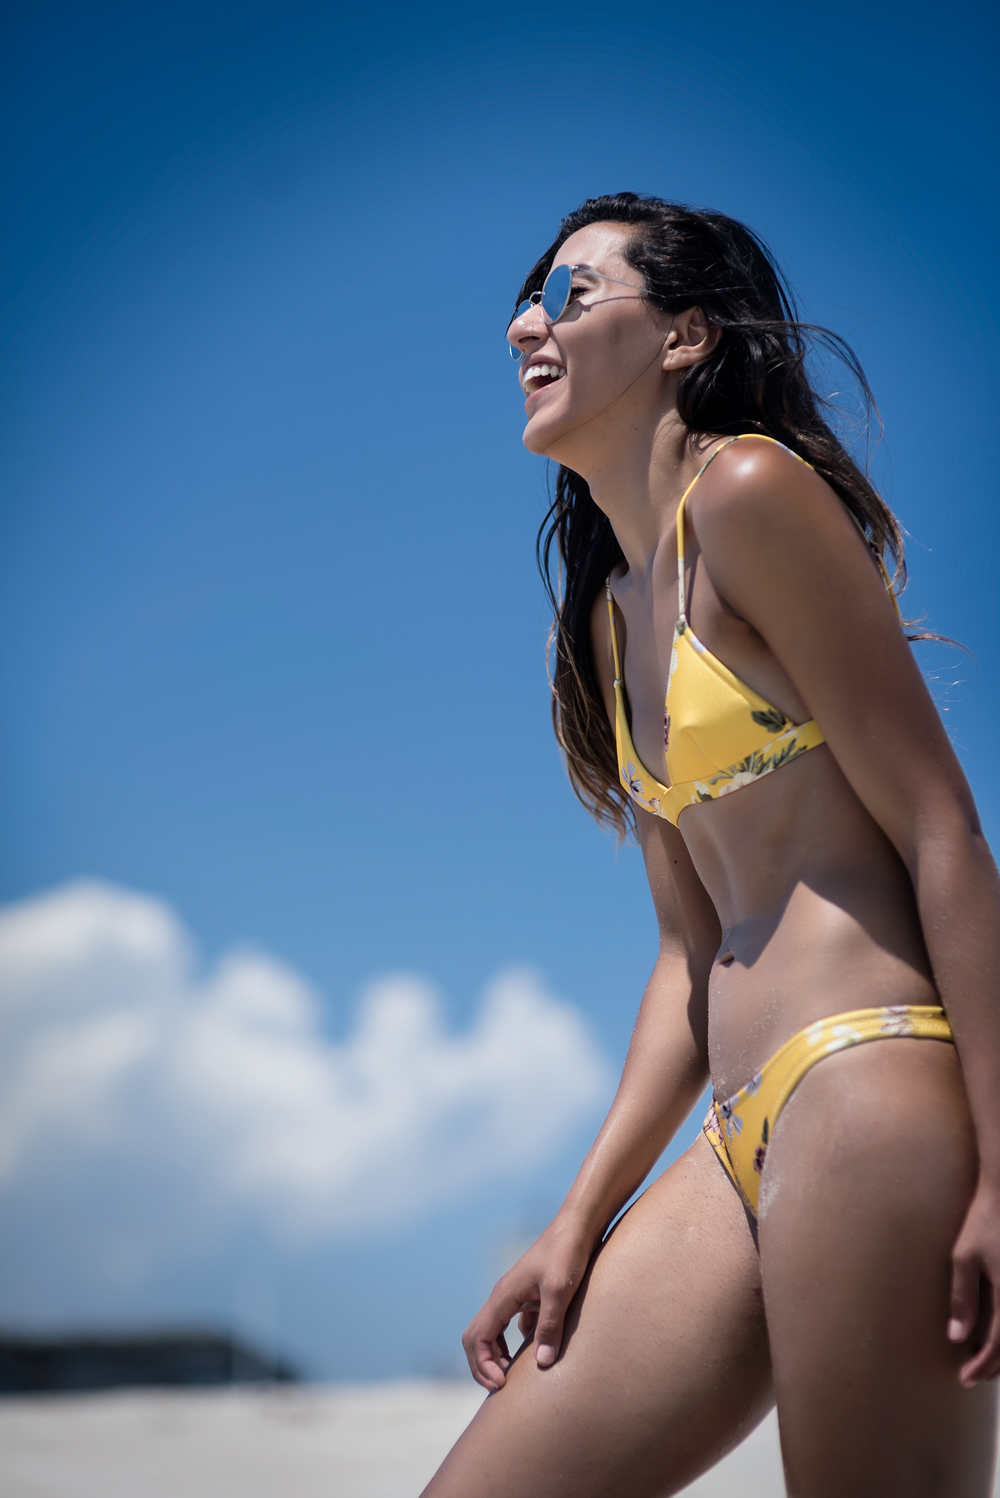 fashion-blogger-summer-swimwear-triangl-delilah-fiore-giallo-bikini-raquel-paiva